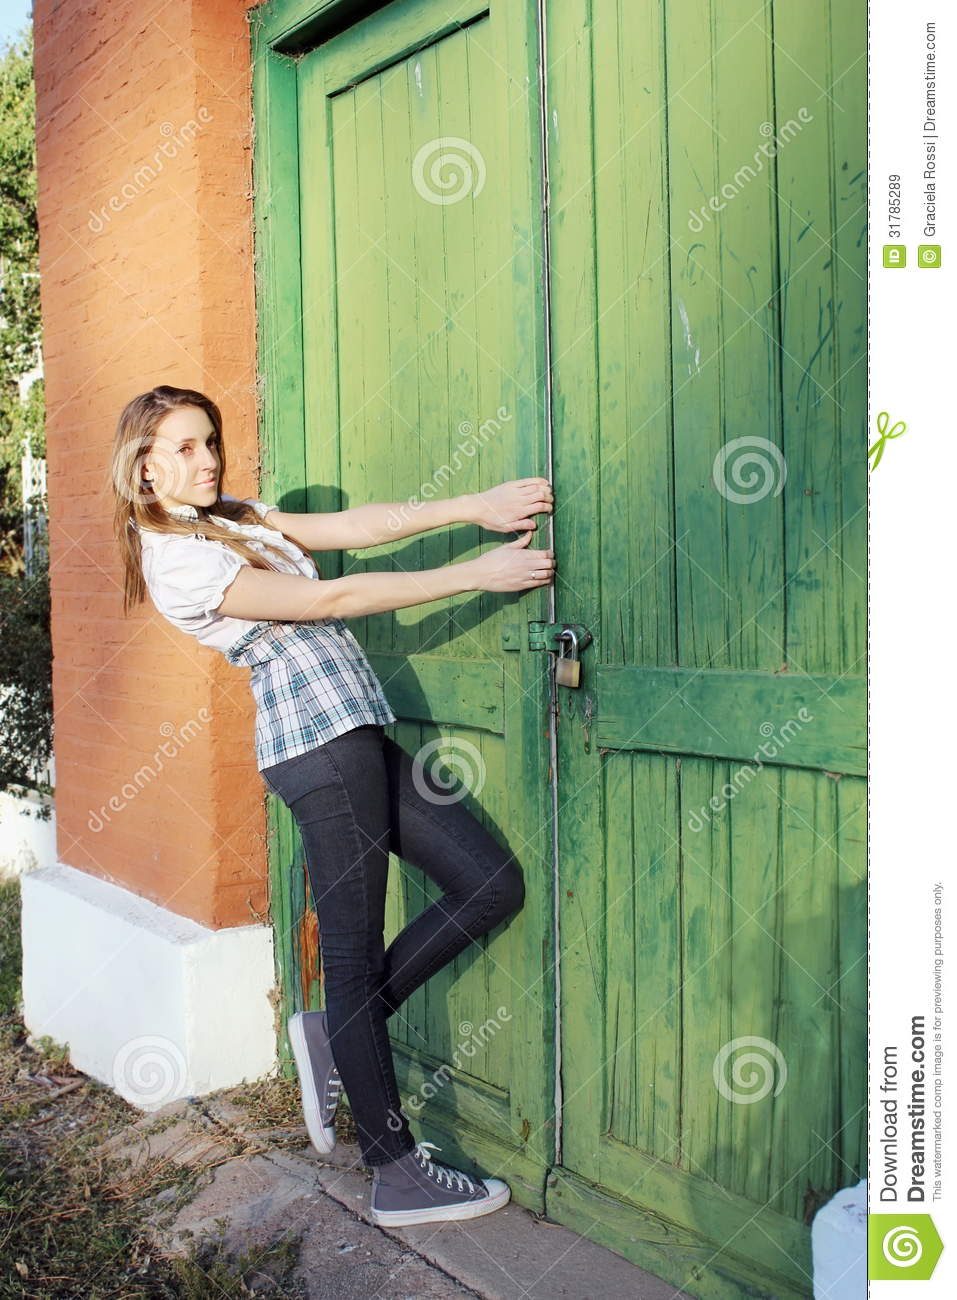 Open The Door Green Royalty Free Stock Images  Image 31785289